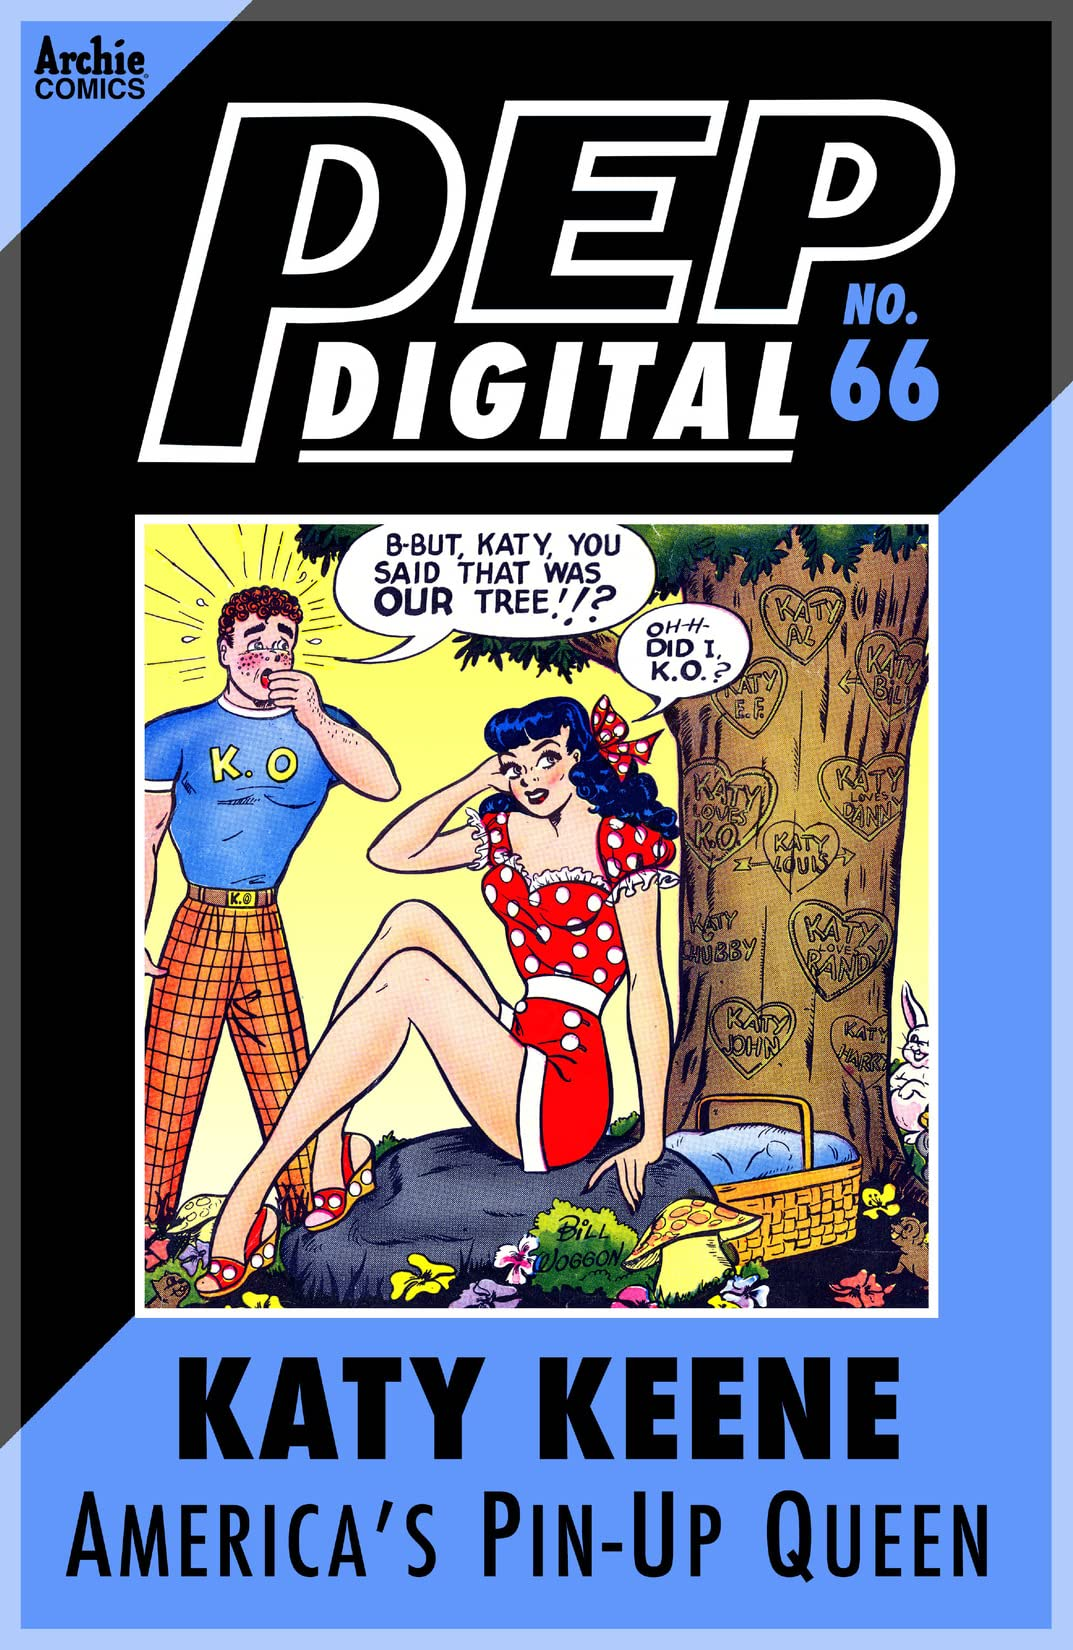 PEP Digital #66: Katy Keene America's Pin-Up Queen